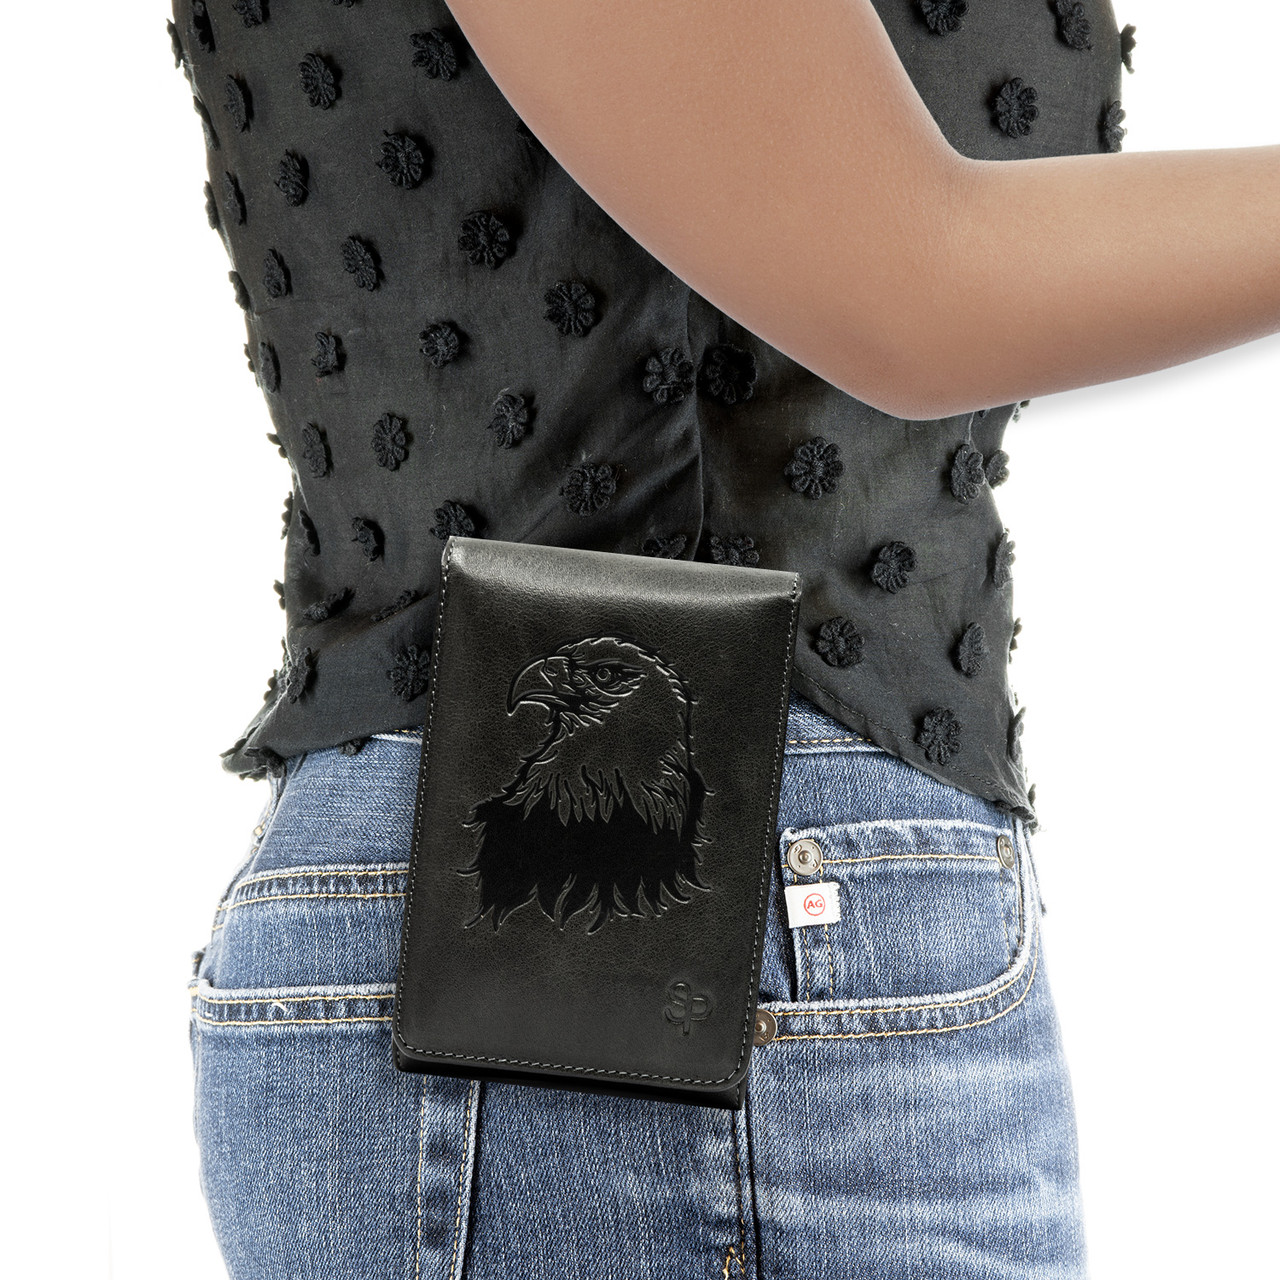 Walther PPQ Sub-Compact Black Freedom Series Holster